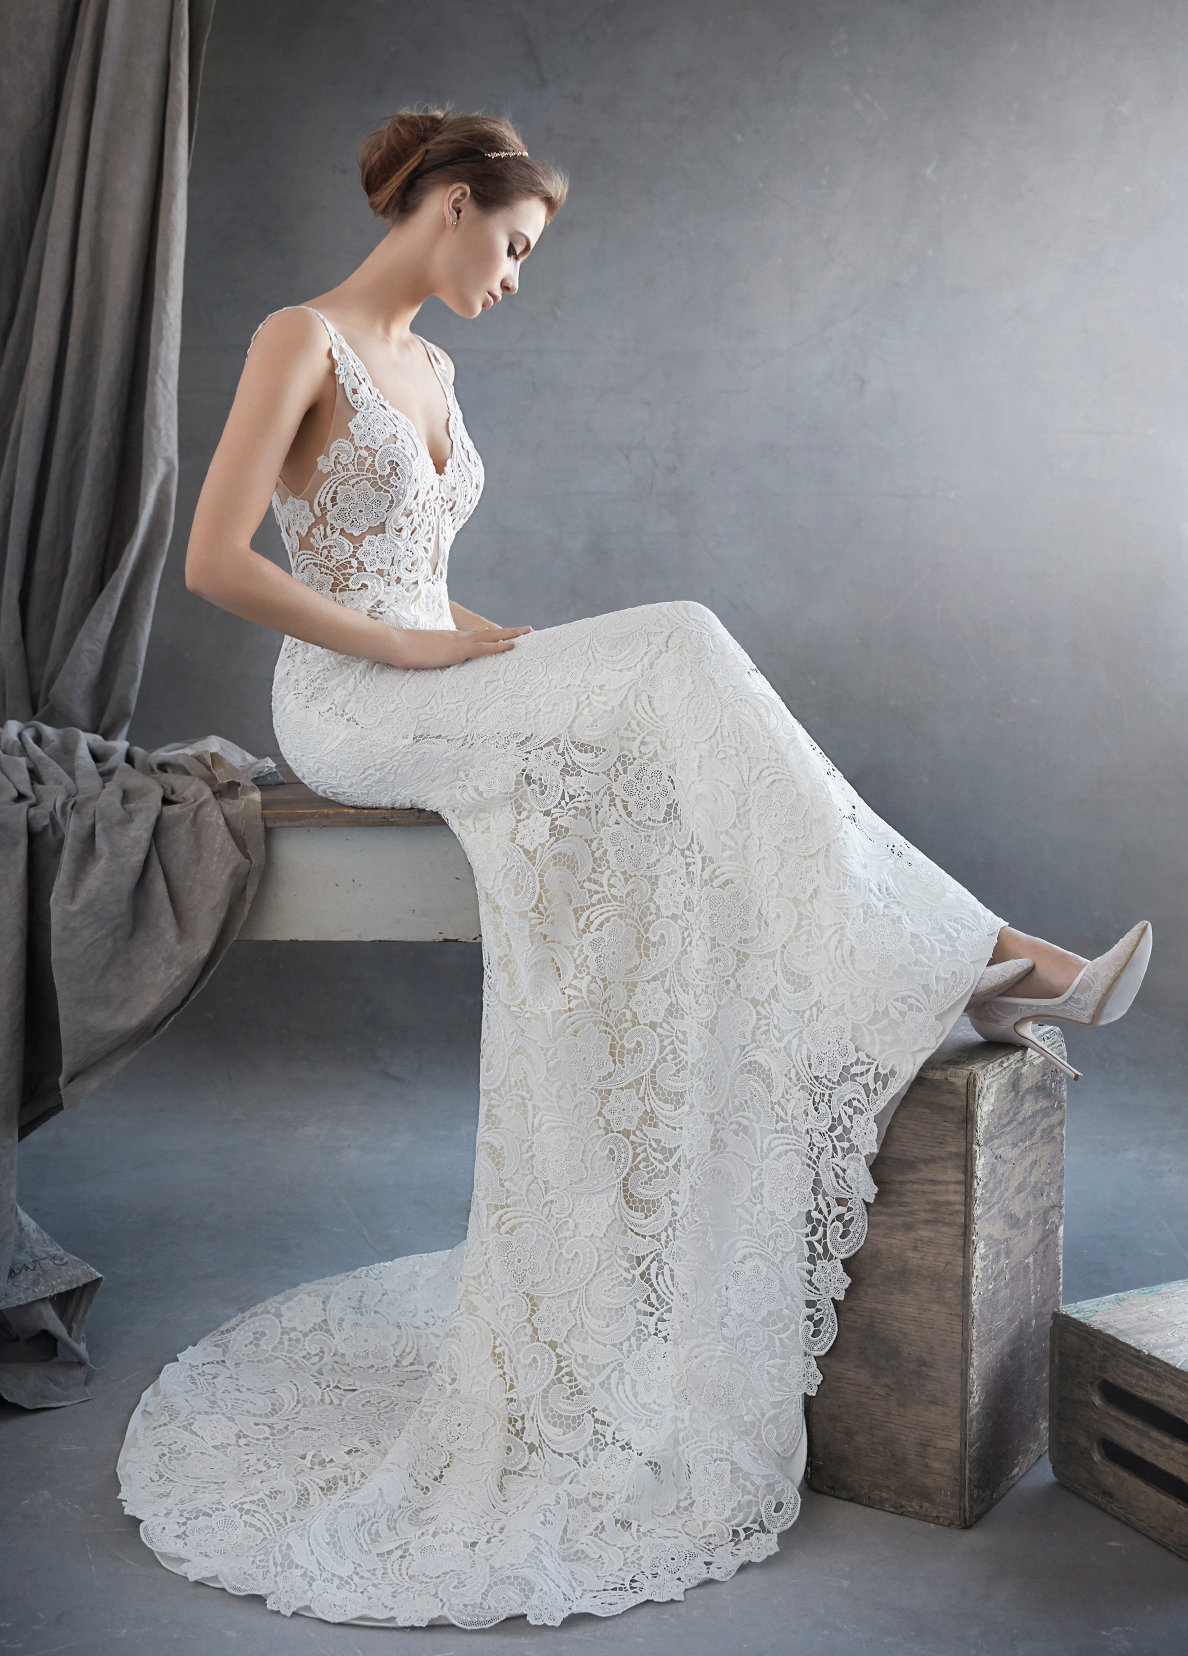 Bridal gowns and wedding dresses by jlm couture style 3609 for Wedding dresses for brides